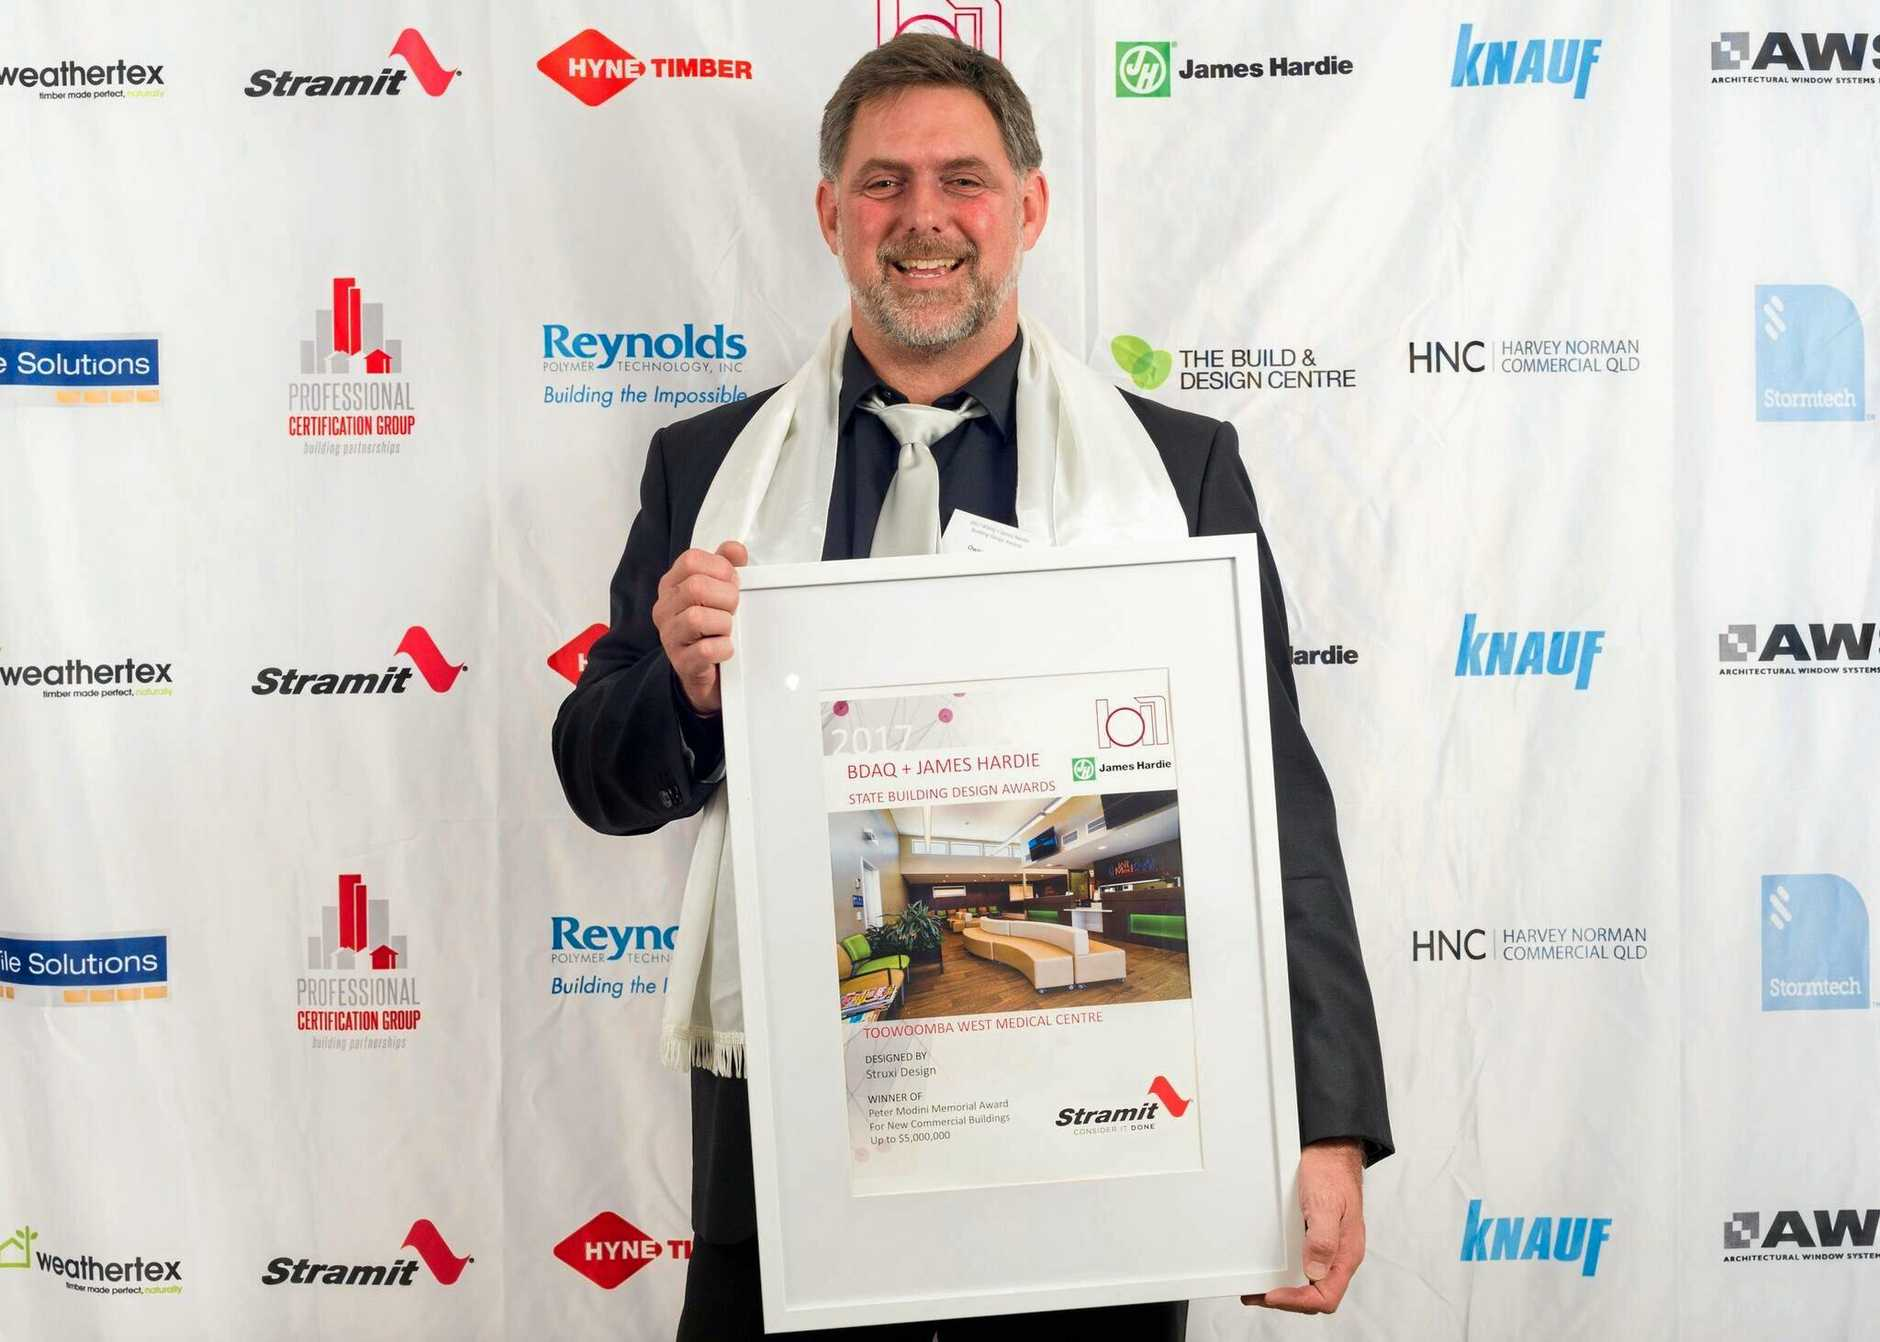 StruXi Design's Owen Kleidon accepted the award for designing Toowoomba West Medical Centre.